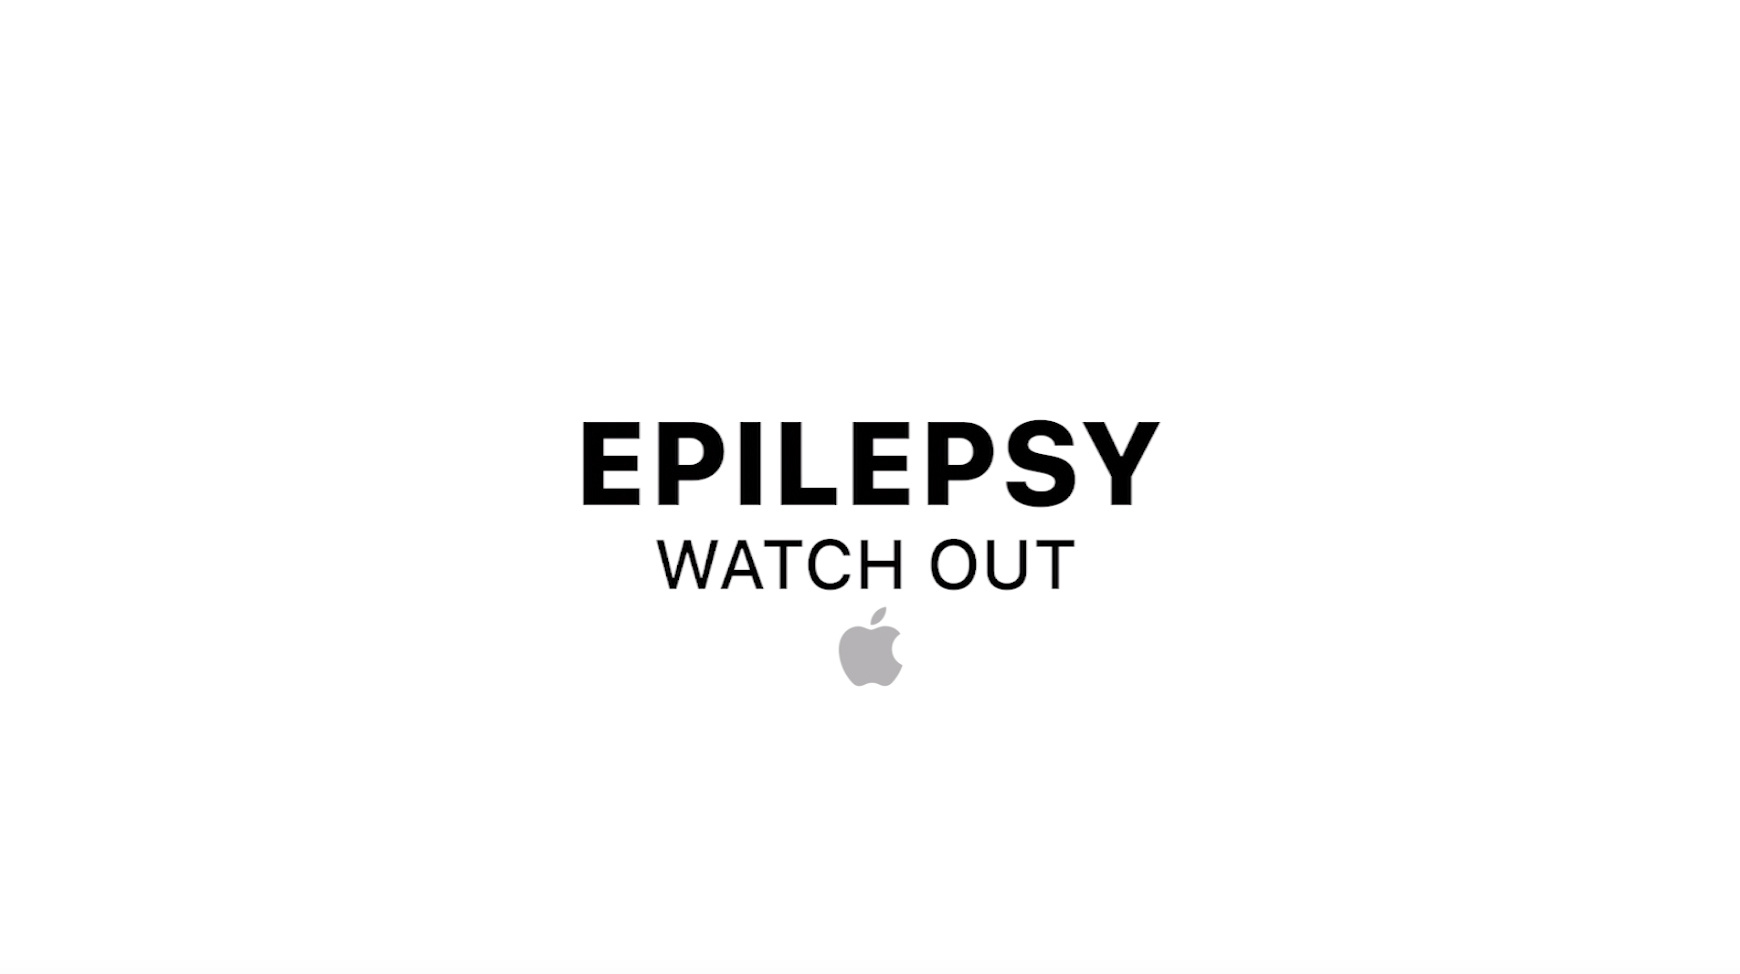 Thumbnail for Apple_Epilepsy Watch Out